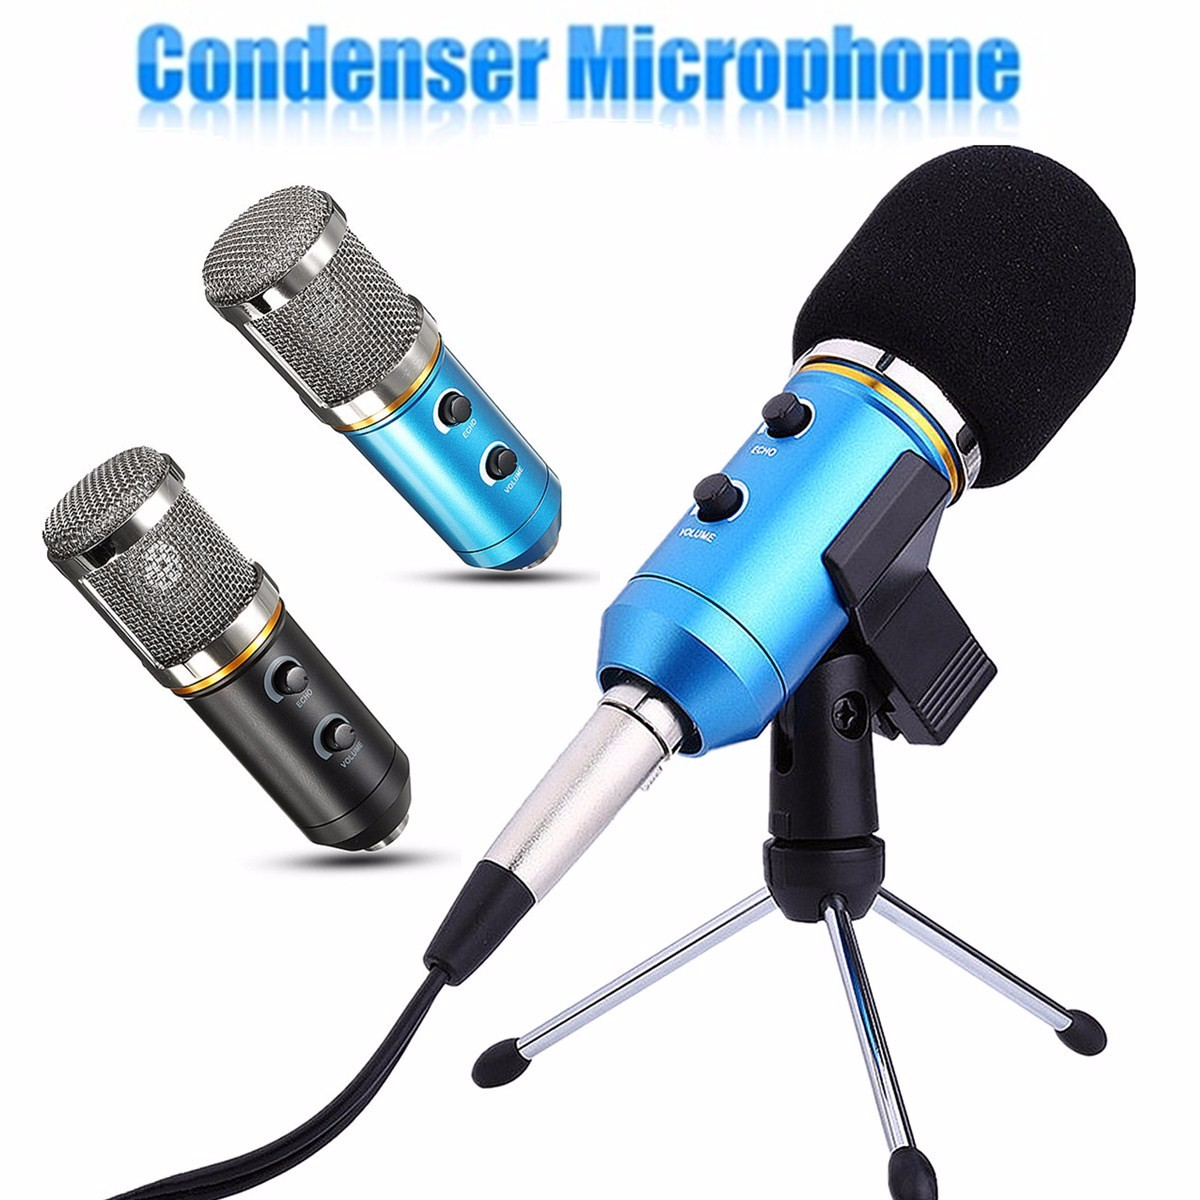 stereo studio condenser microphone usb professional condenser microfone with stand karaoke mic. Black Bedroom Furniture Sets. Home Design Ideas